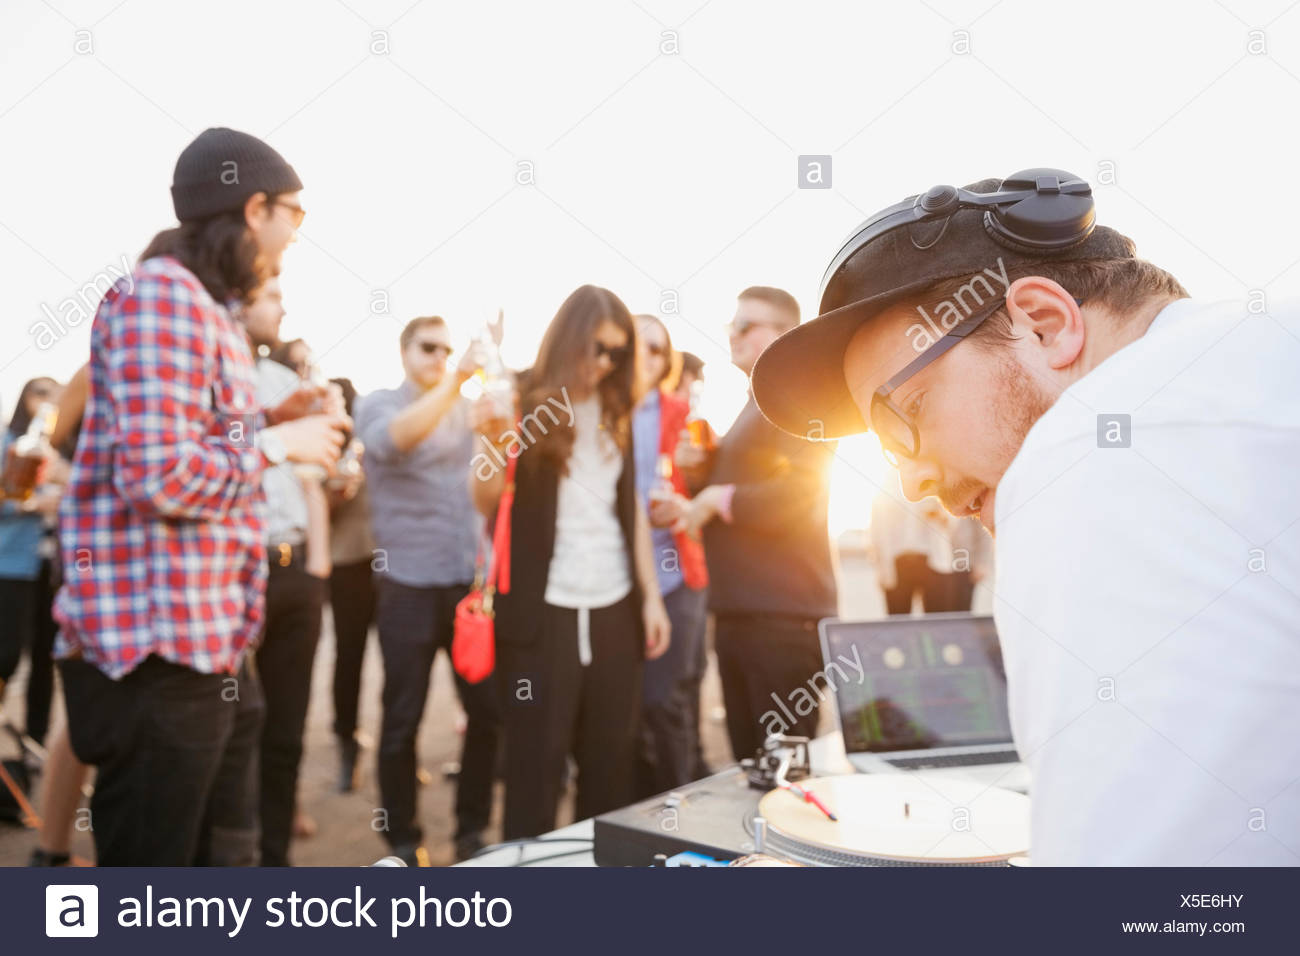 DJ playing music at rooftop party - Stock Image